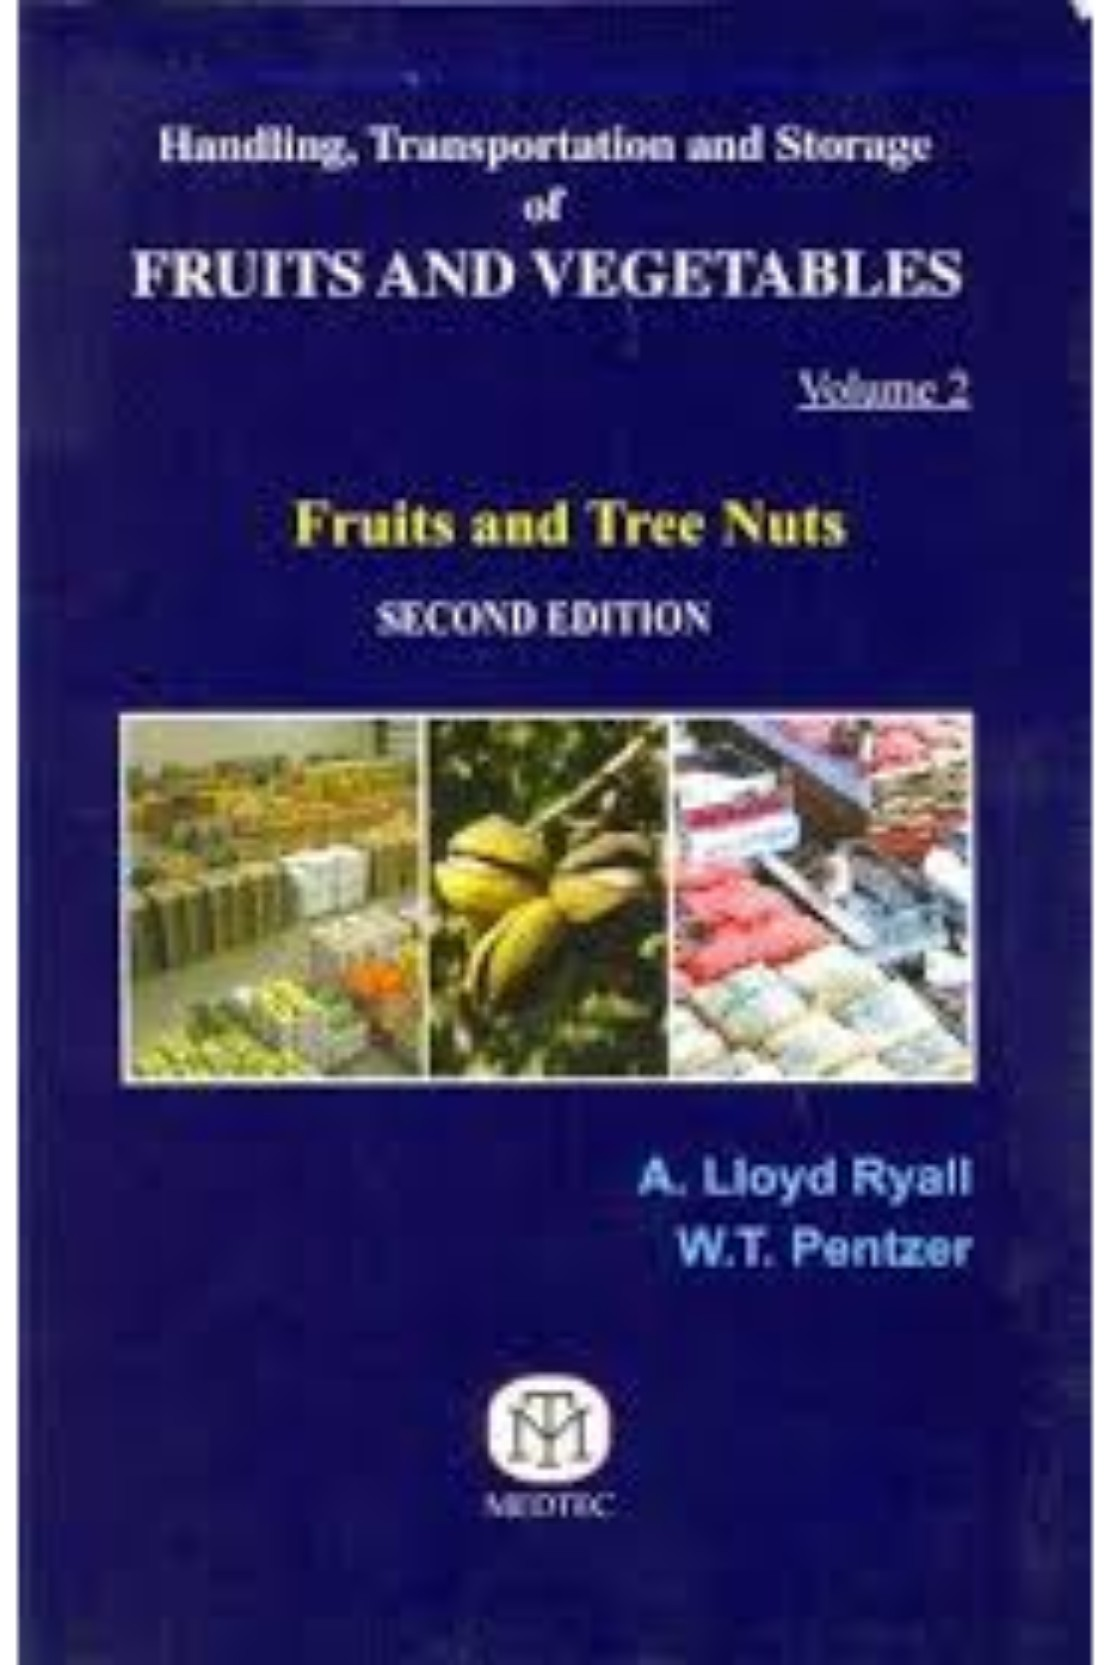 HANDLING TRANSPORTATION AND STORAGE OF FRUITS AND VEGETABLES VOL 2 FRUITS  AND TREE NUTS 2/E (PB)